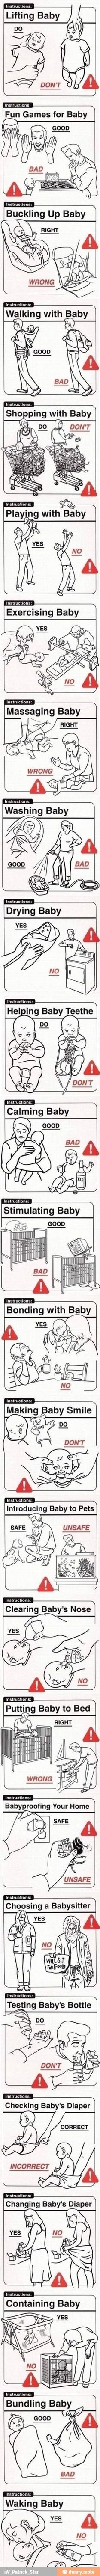 The guide for a man left alone with the baby